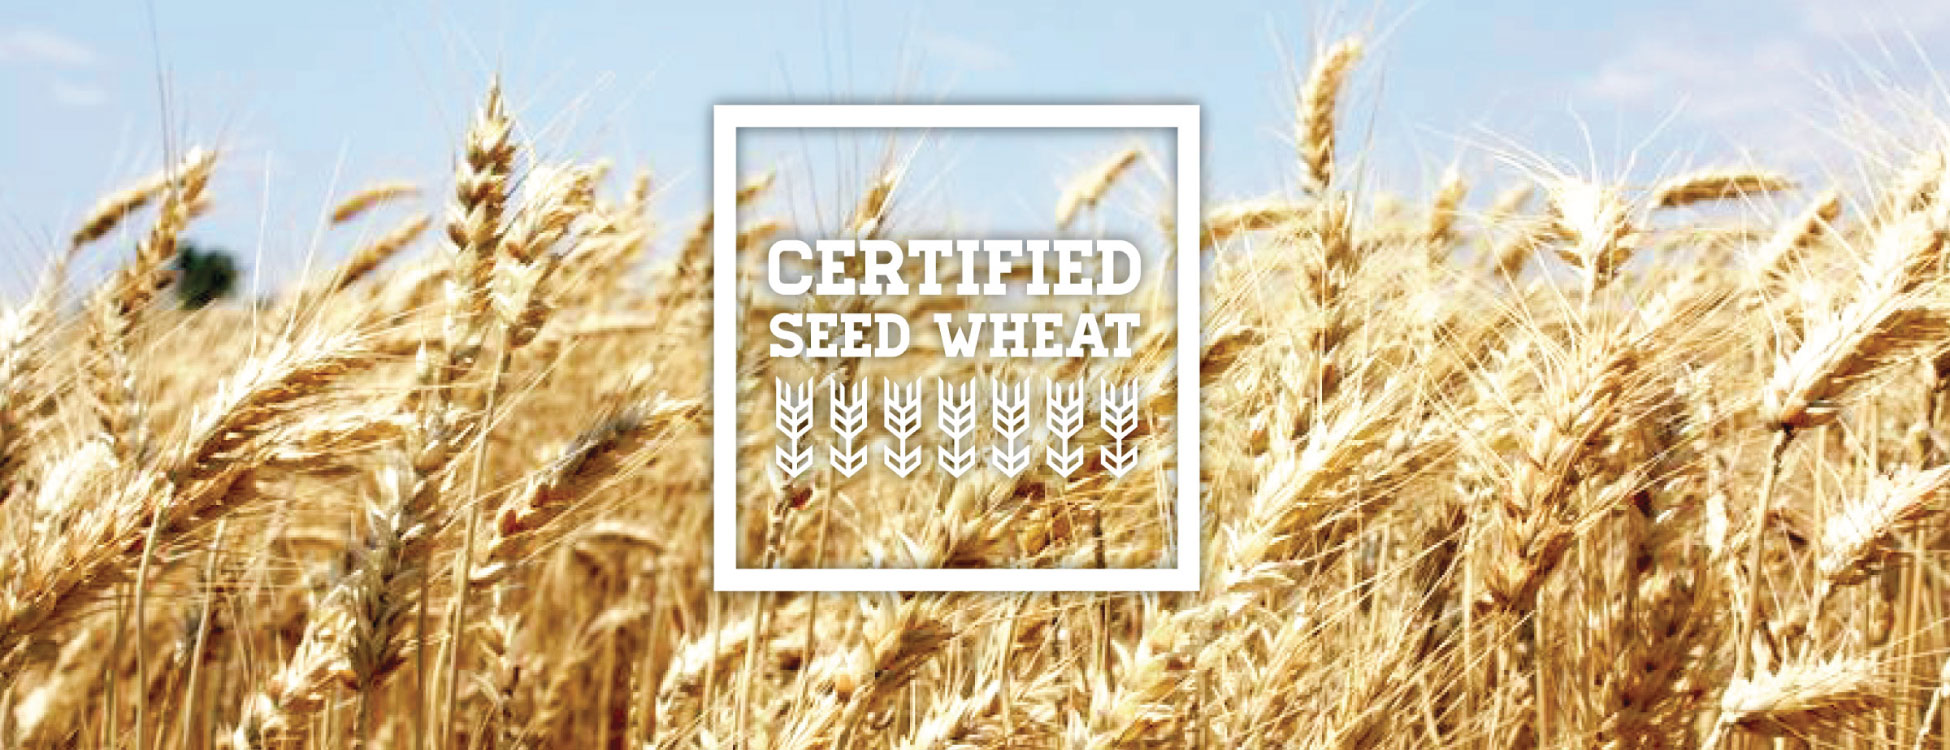 Midwest Seed Wheat